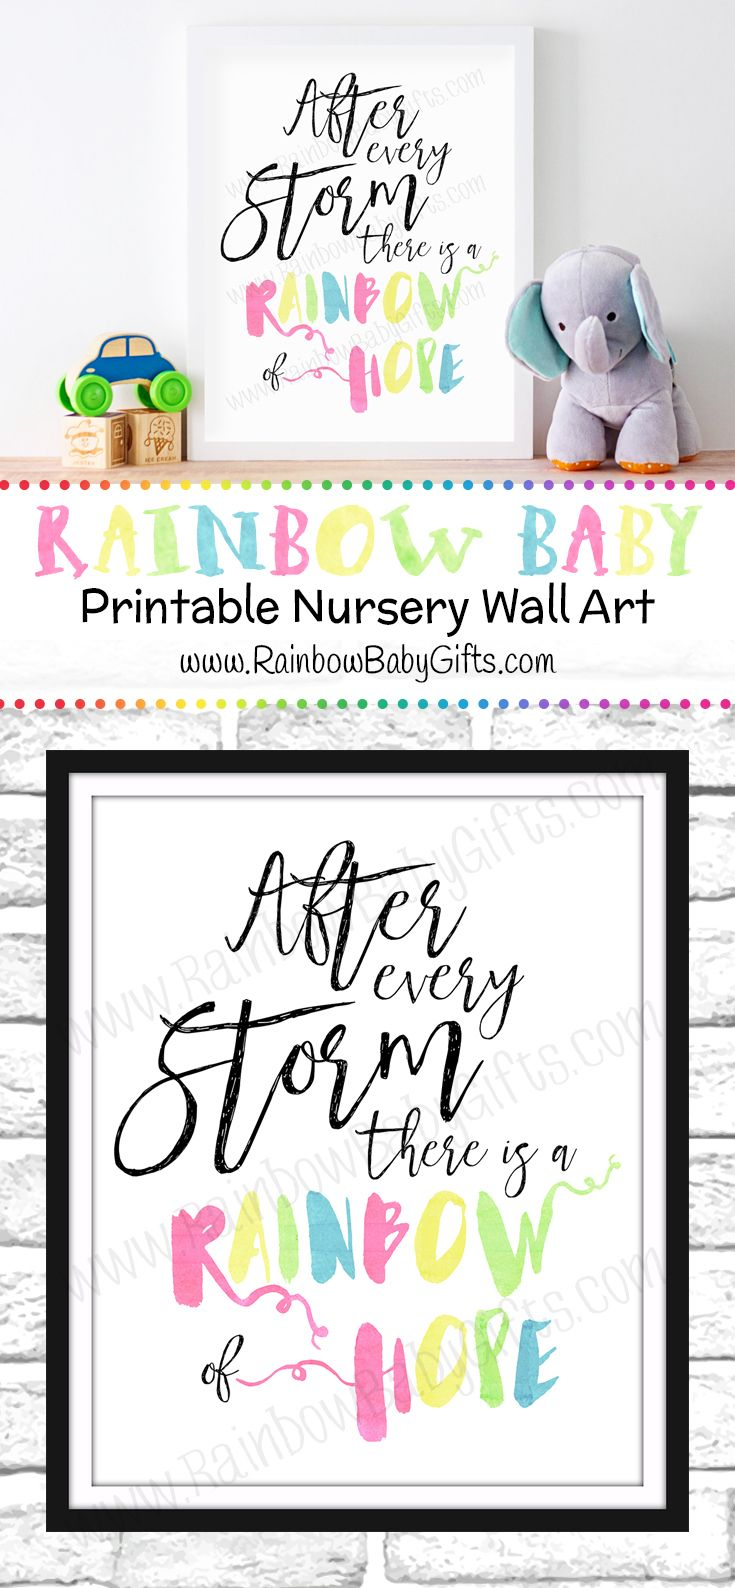 After Every Storm There Is A Rainbow Of Hope - Rainbow Pastel Watercolor Nursery Wall Art https://www.etsy.com/ca/listing/459771356/rainbow-baby-nursery-wall-art-after